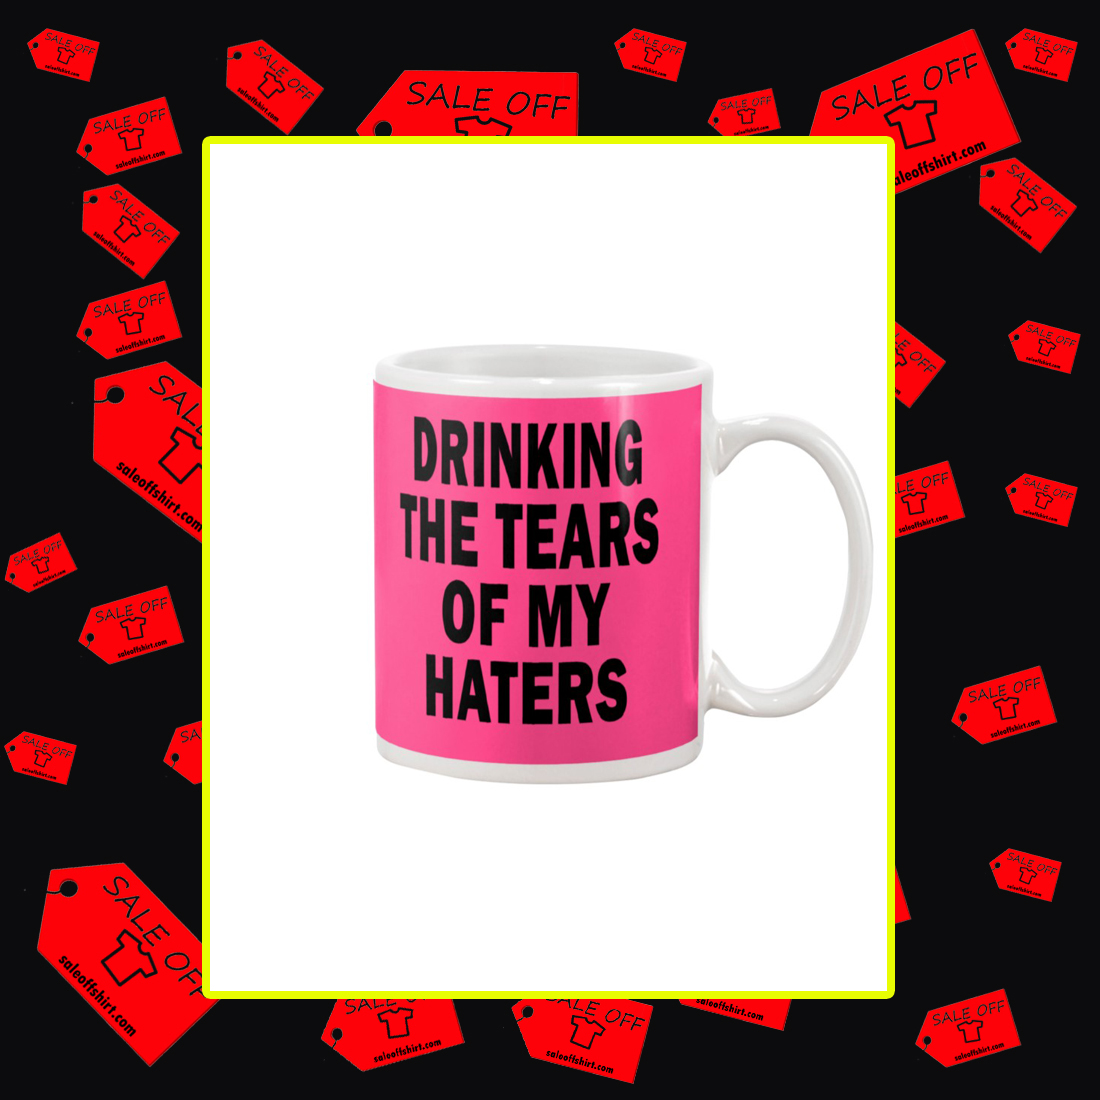 Drinking the tears of my haters mug - pink